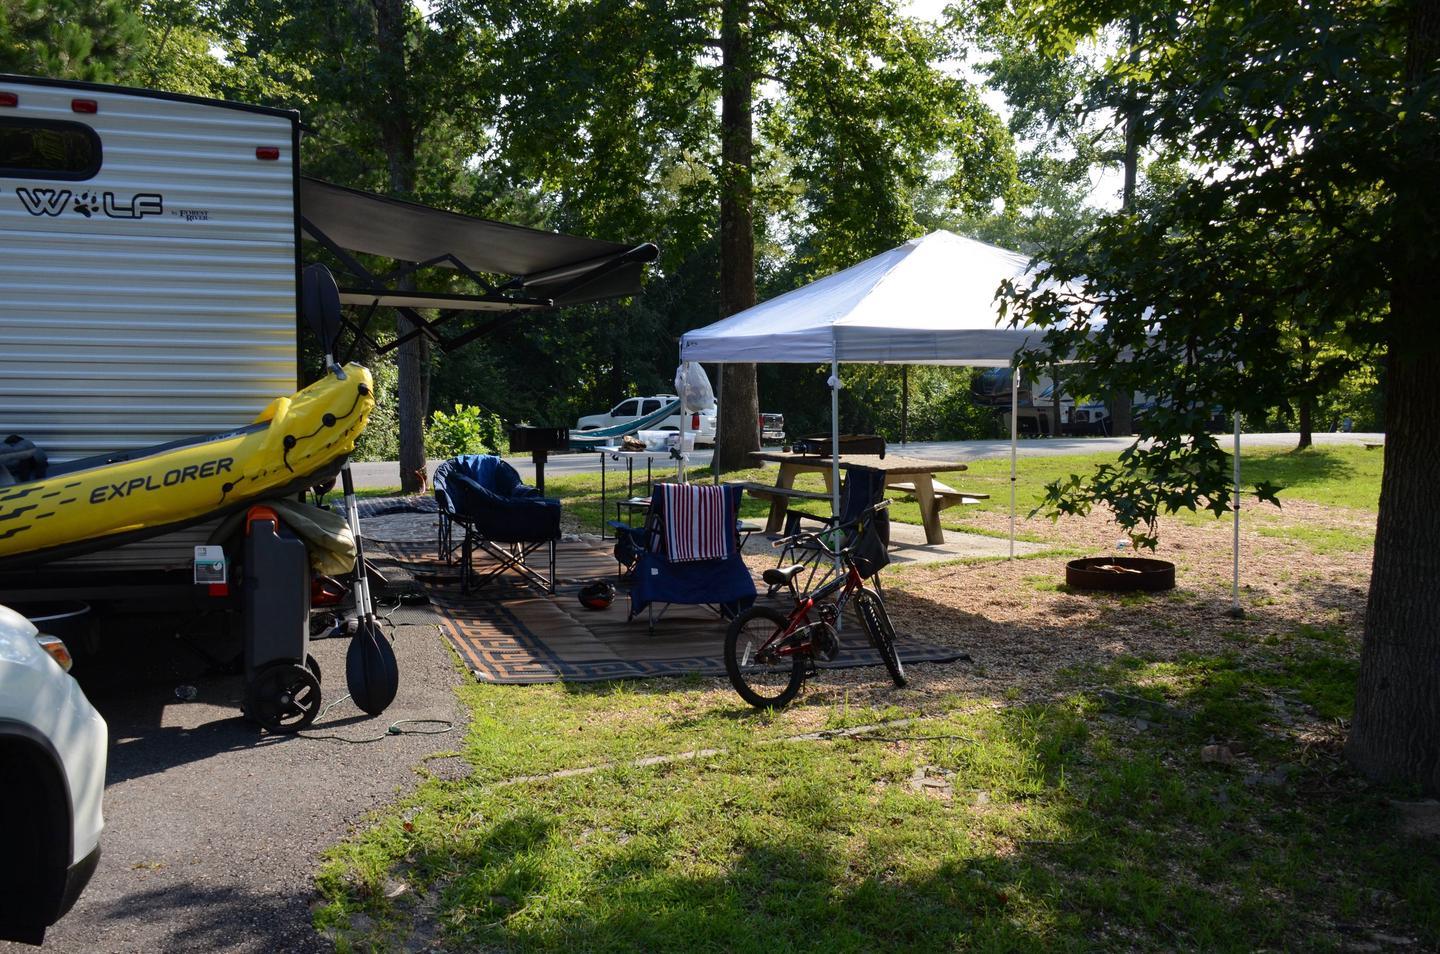 Awning-side clearance, campsite view.Payne Campground, campsite 28.